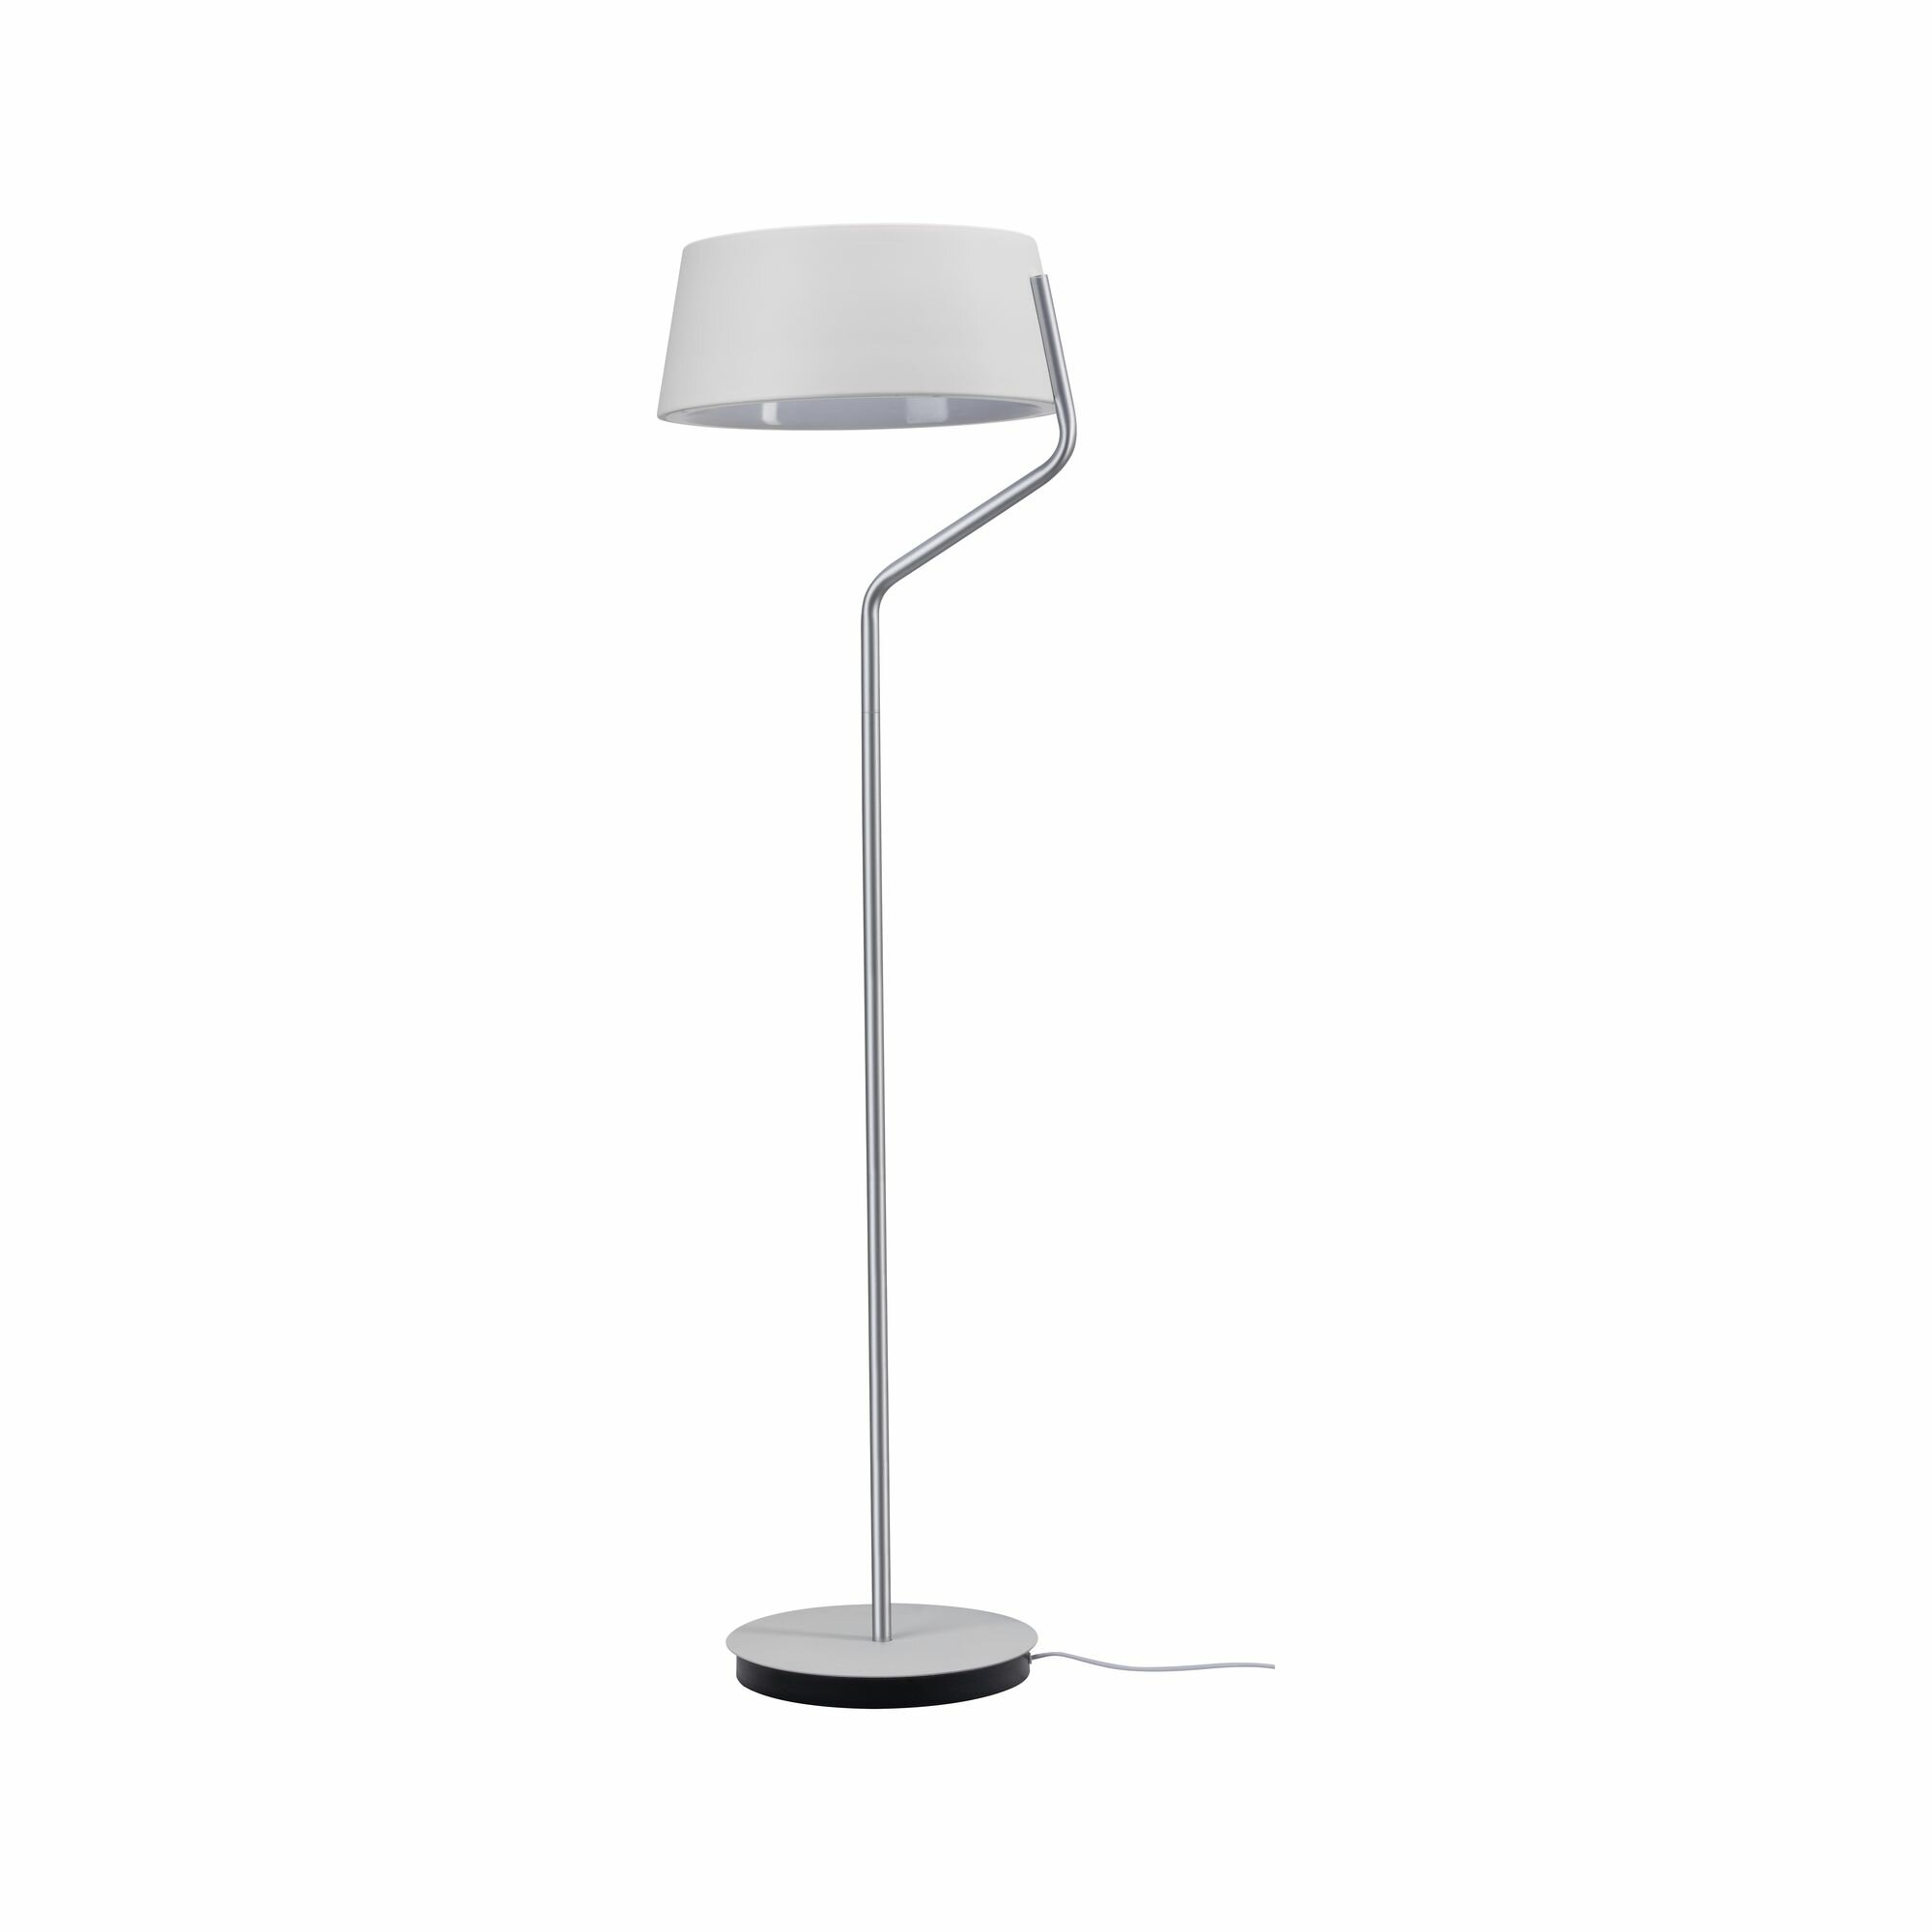 Ebern Designs 148 Cm Led Stehlampe Helton Wayfair De